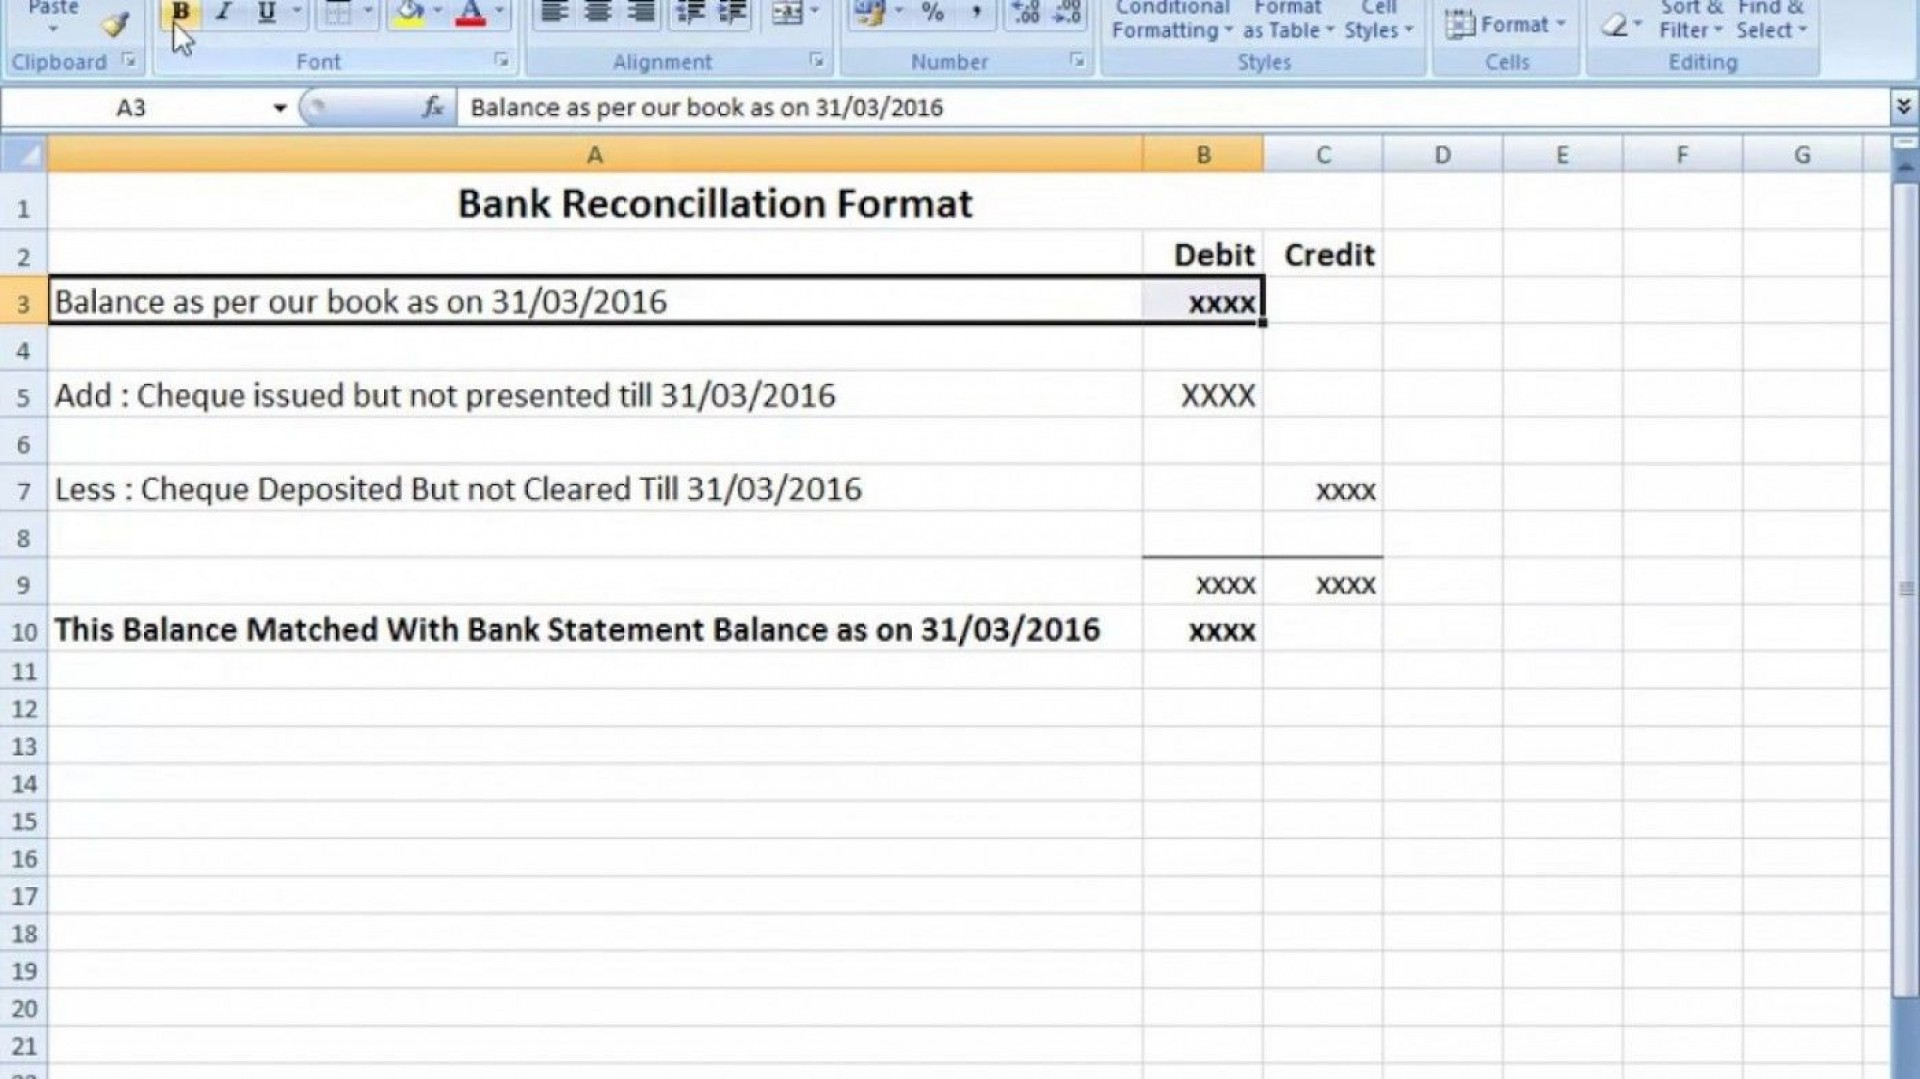 004 Excellent Bank Reconciliation Statement Format Excel Sheet Inspiration  Download1920